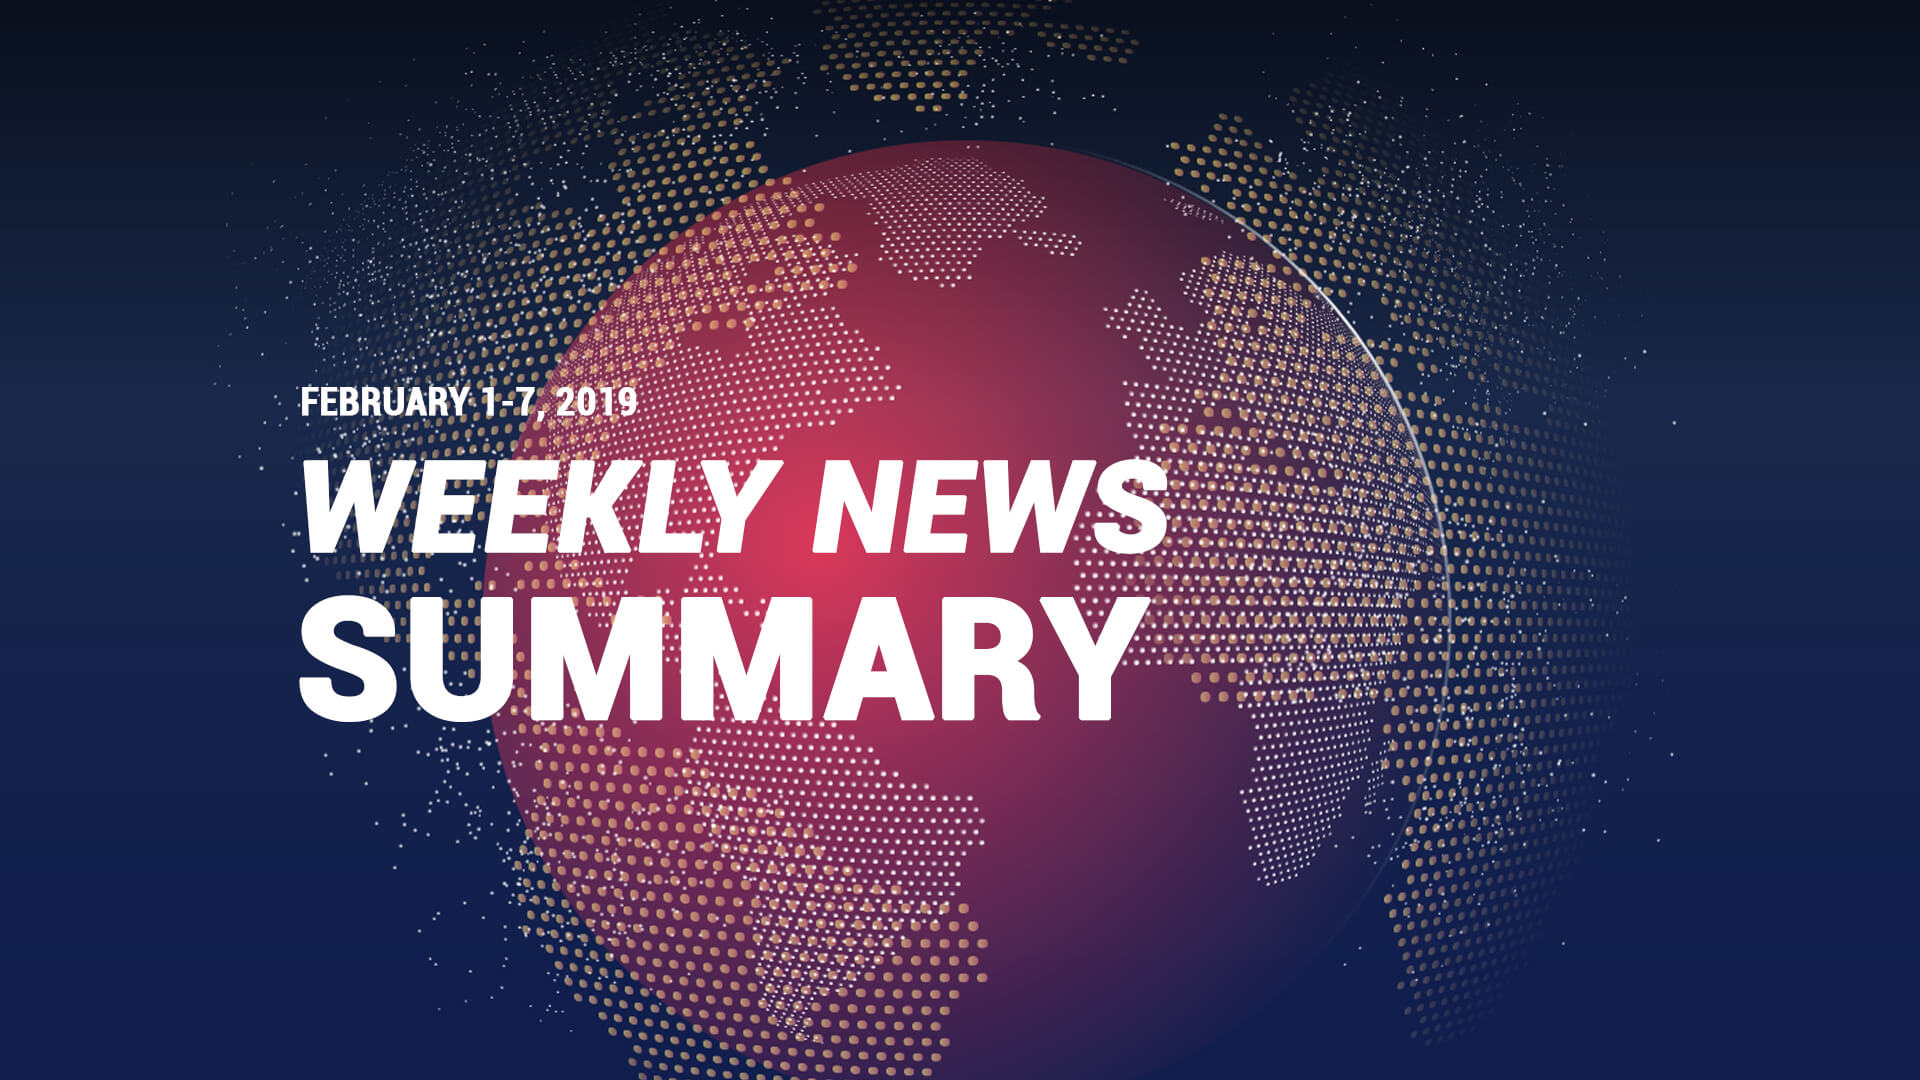 Weekly News For February 1-7, 2018 - Finance Brokerage